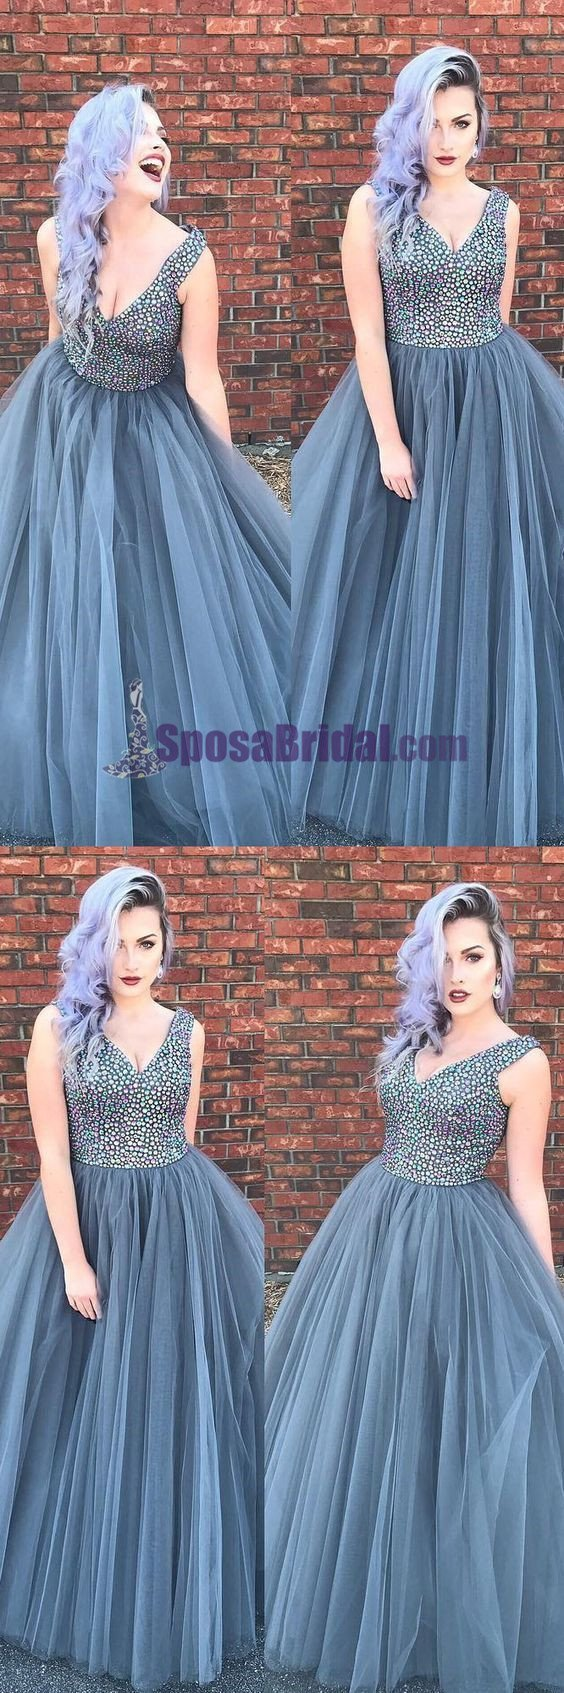 Attractive Sparkly Prom Dresses Online – Page 3 – SposaBridal